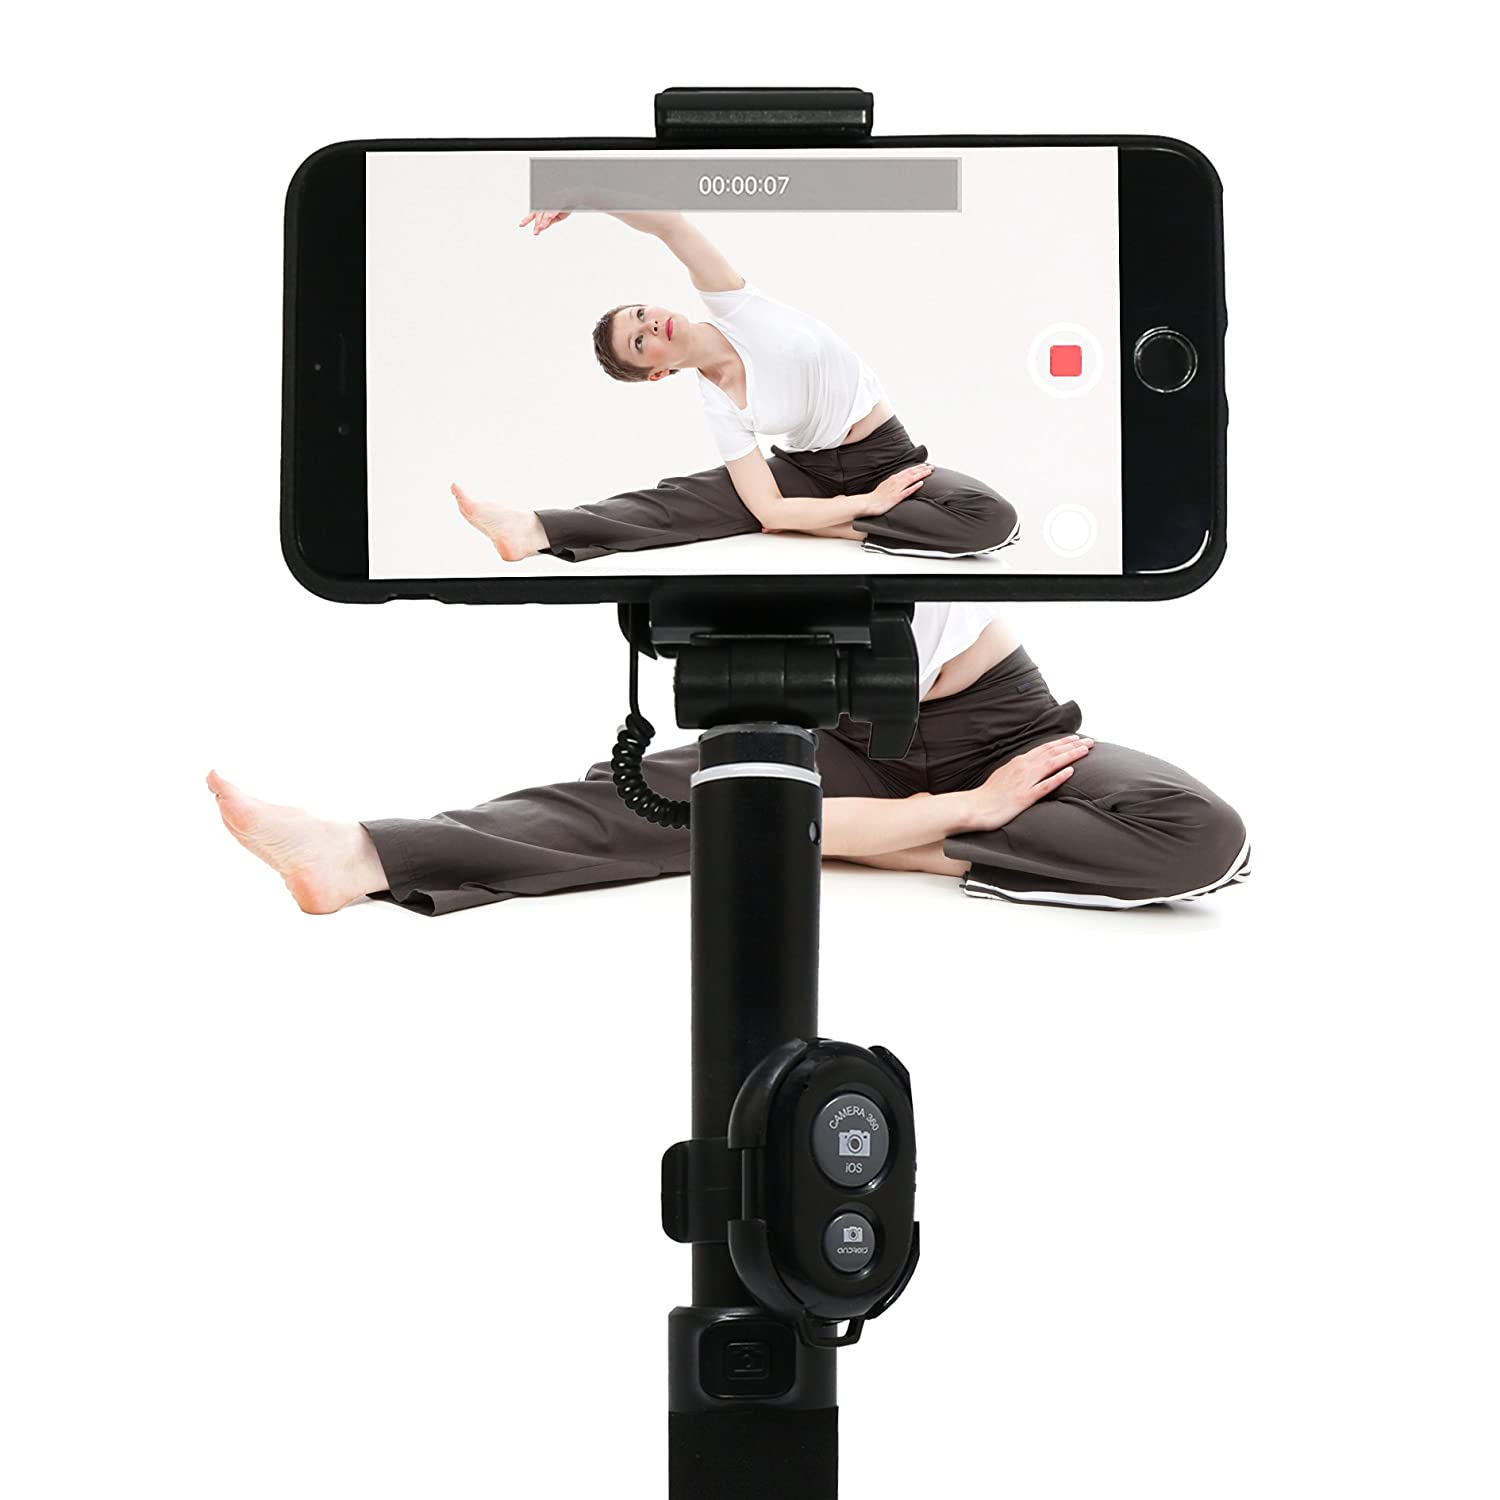 innelo Yoga Pose Recorder Black Training Aid Yoga Equipment to Improve and Share Training Results Training Aid Yoga Equipment to Improve and Share Training Results E-S101-B